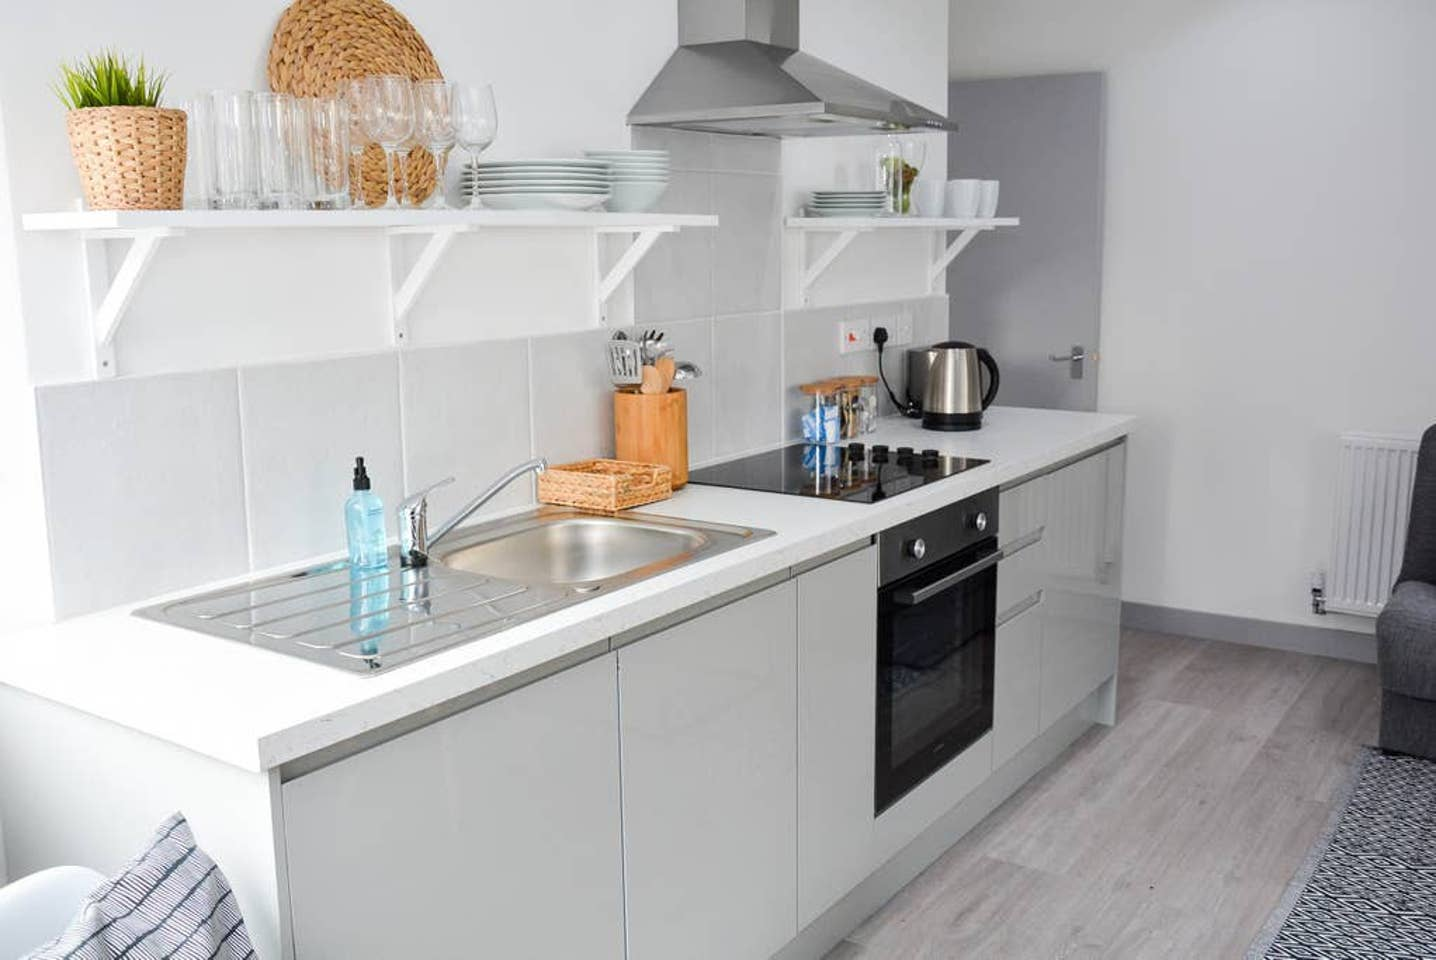 Kitchen at Pearl House Serviced Apartments, Roath, Cardiff - Citybase Apartments